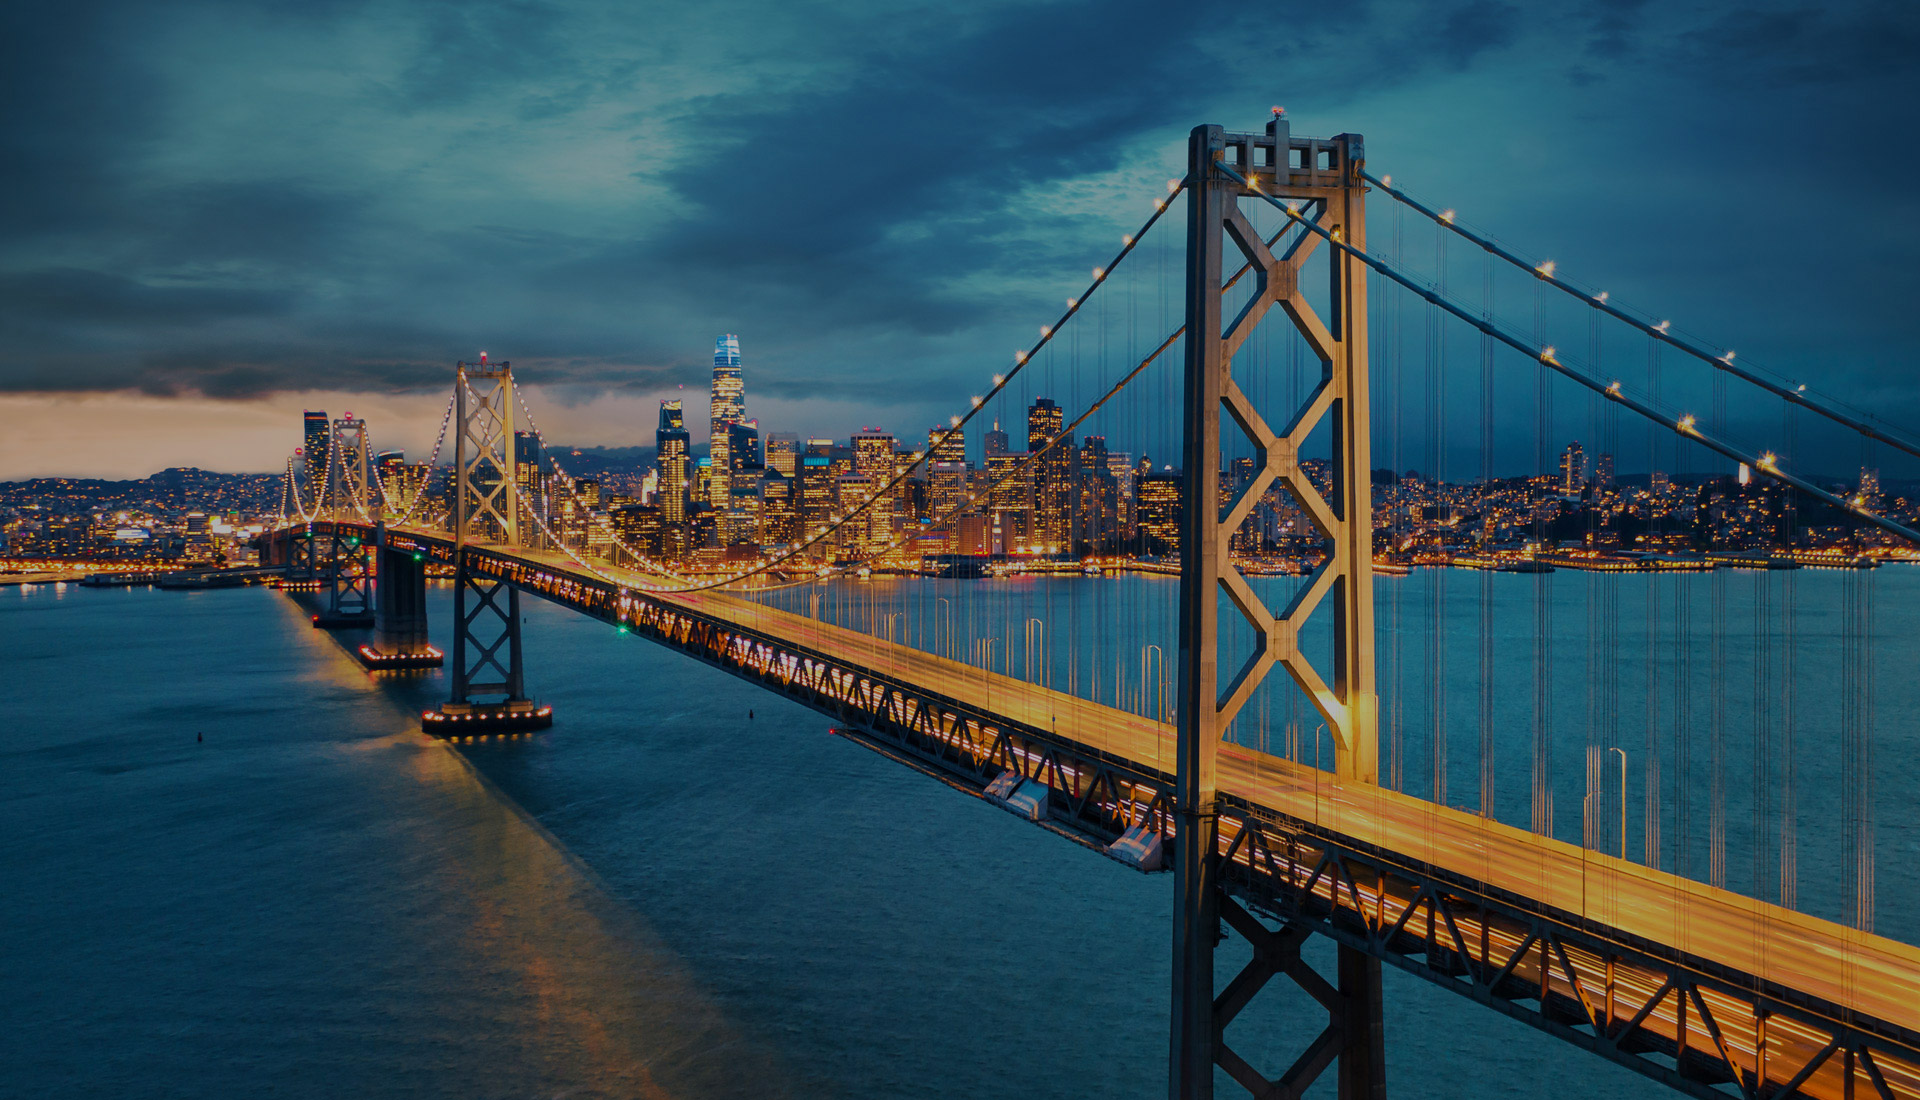 structural and earthquake engineering in the San Francisco and Marin County Areas